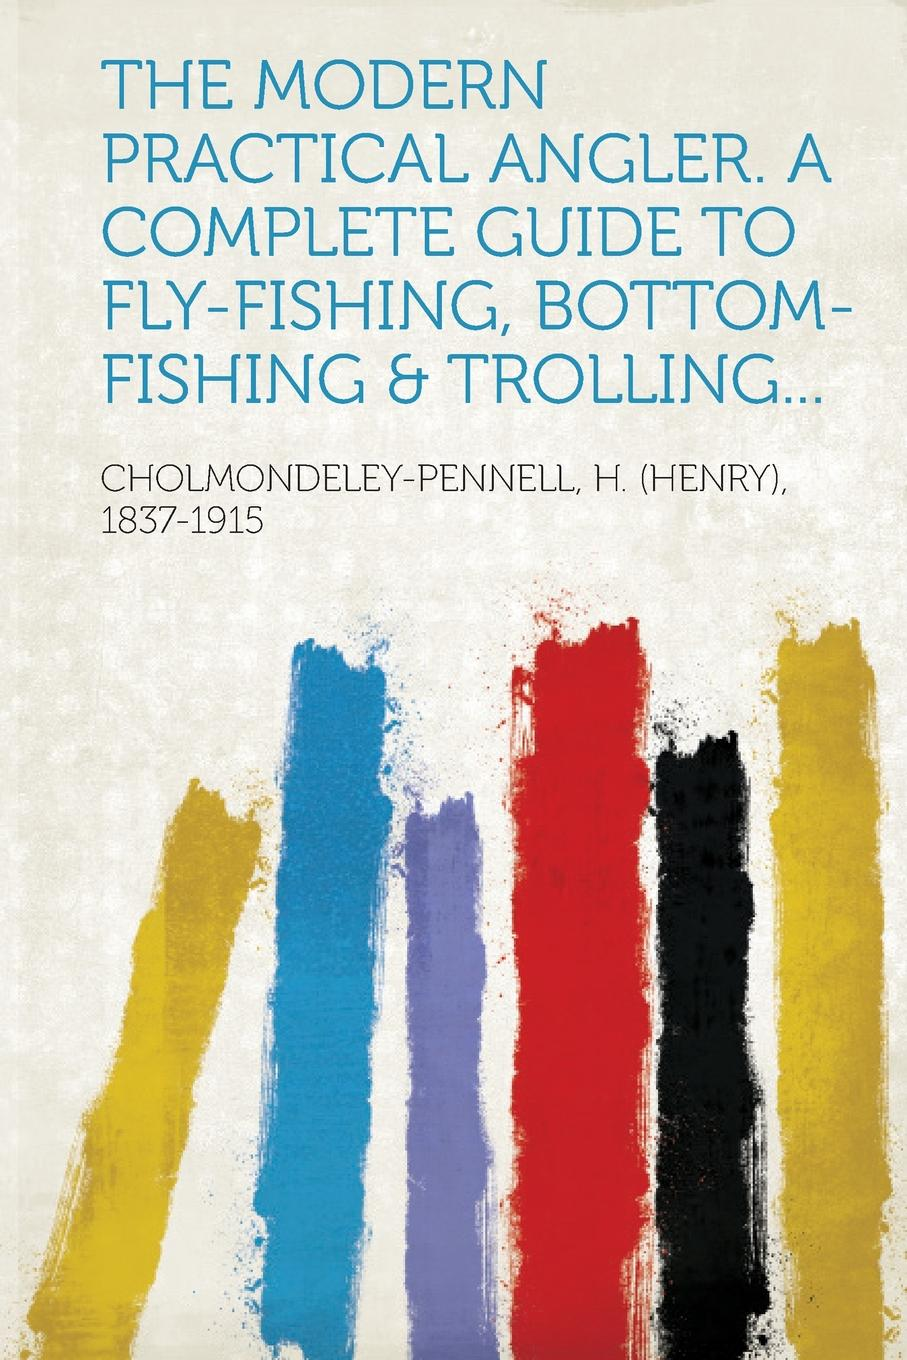 The Modern Practical Angler. a Complete Guide to Fly-Fishing, Bottom-Fishing . Trolling... fly–fishing with children – a guide for parents